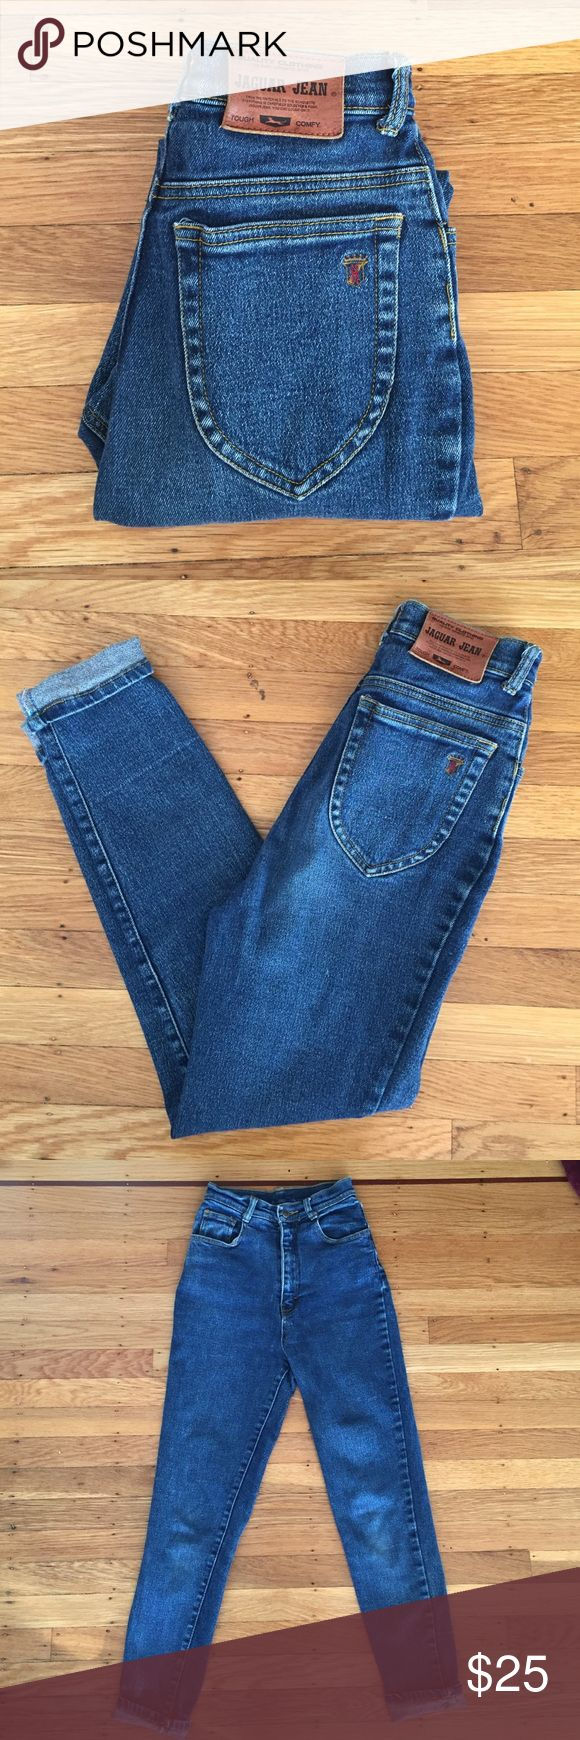 Vintage high waisted jeans High waisted mom jeans. In great condition! Tag says 27 but best fits a size 24/25 vintage  Jeans